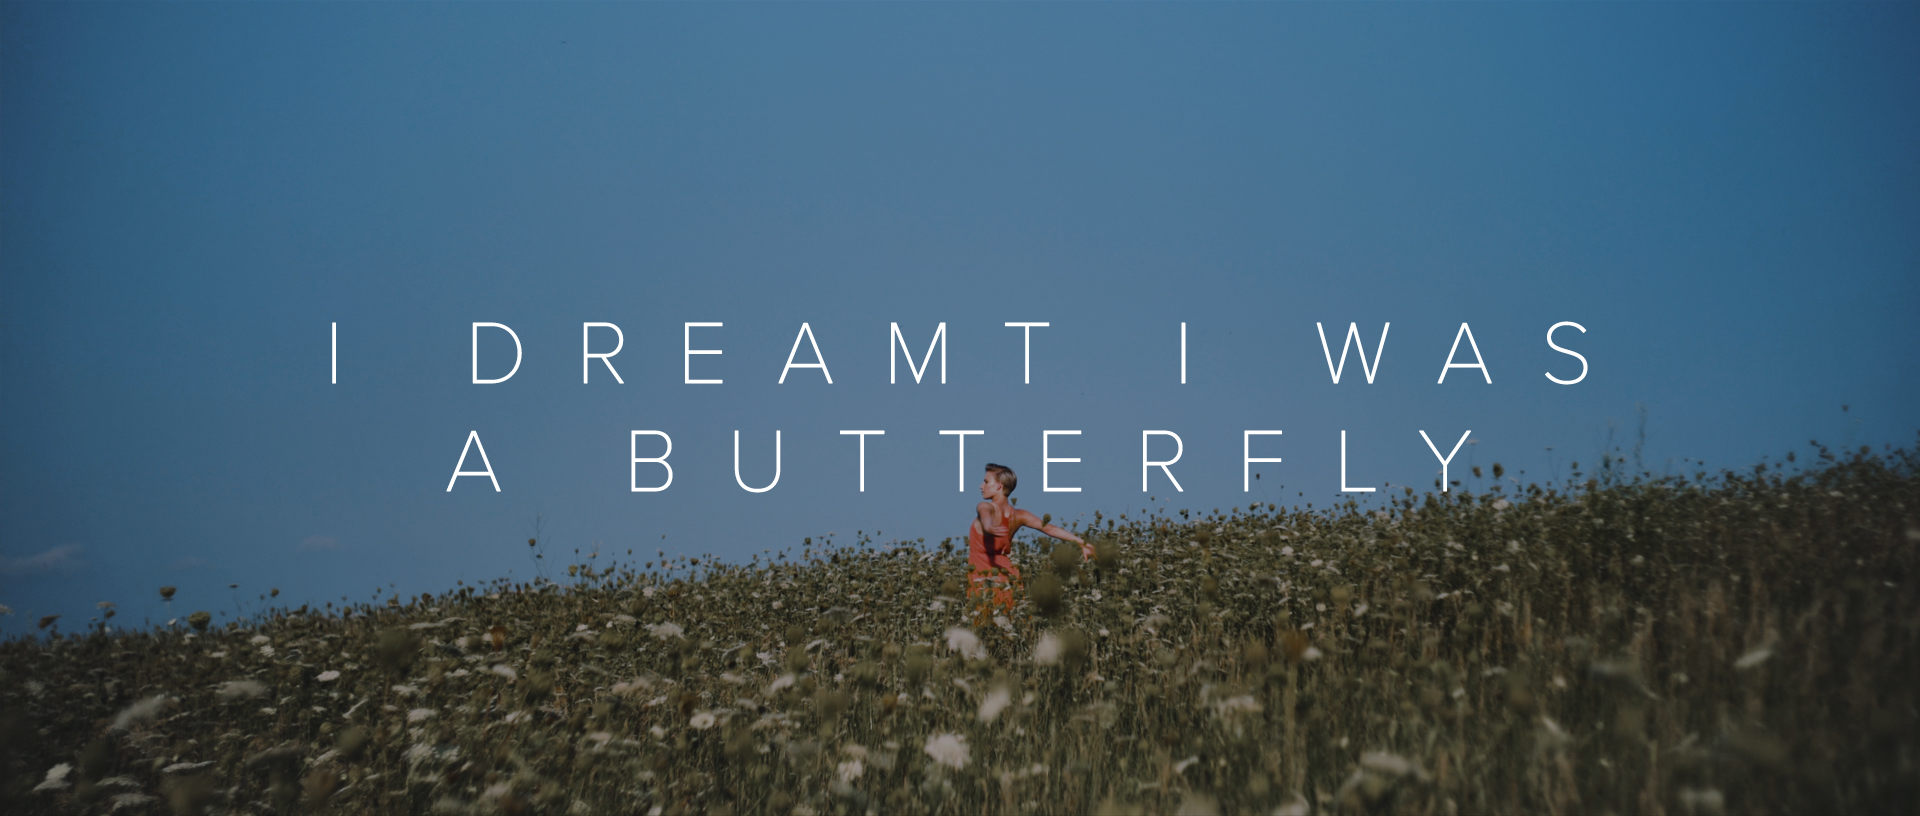 I dreamt i was a butterfly - director, cinematographer, composer (currently in submission)2019 Oklahoma Dance Film Festival2019 FAD Festival: Film-Art-Dance on Tour